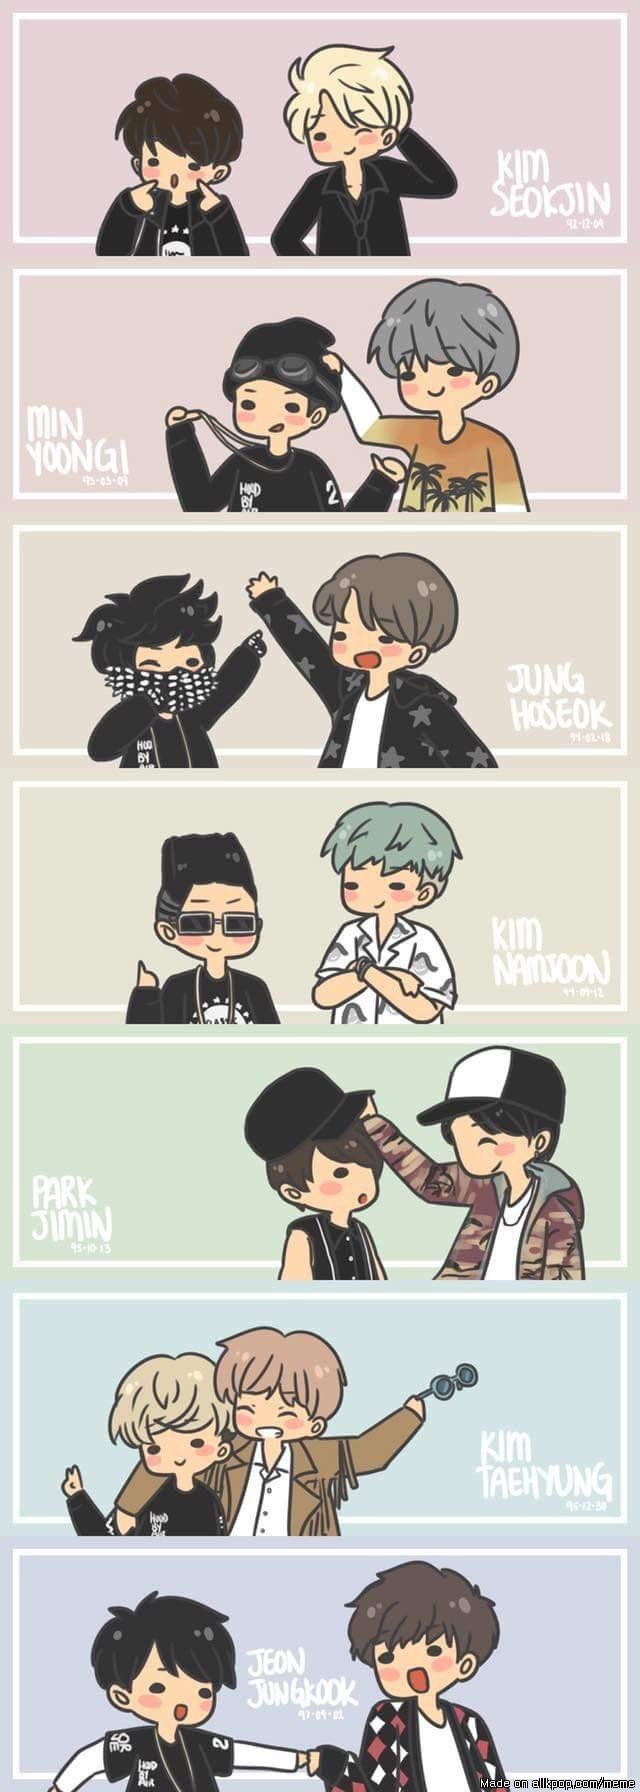 This is so cute <3 <3 (ctto)